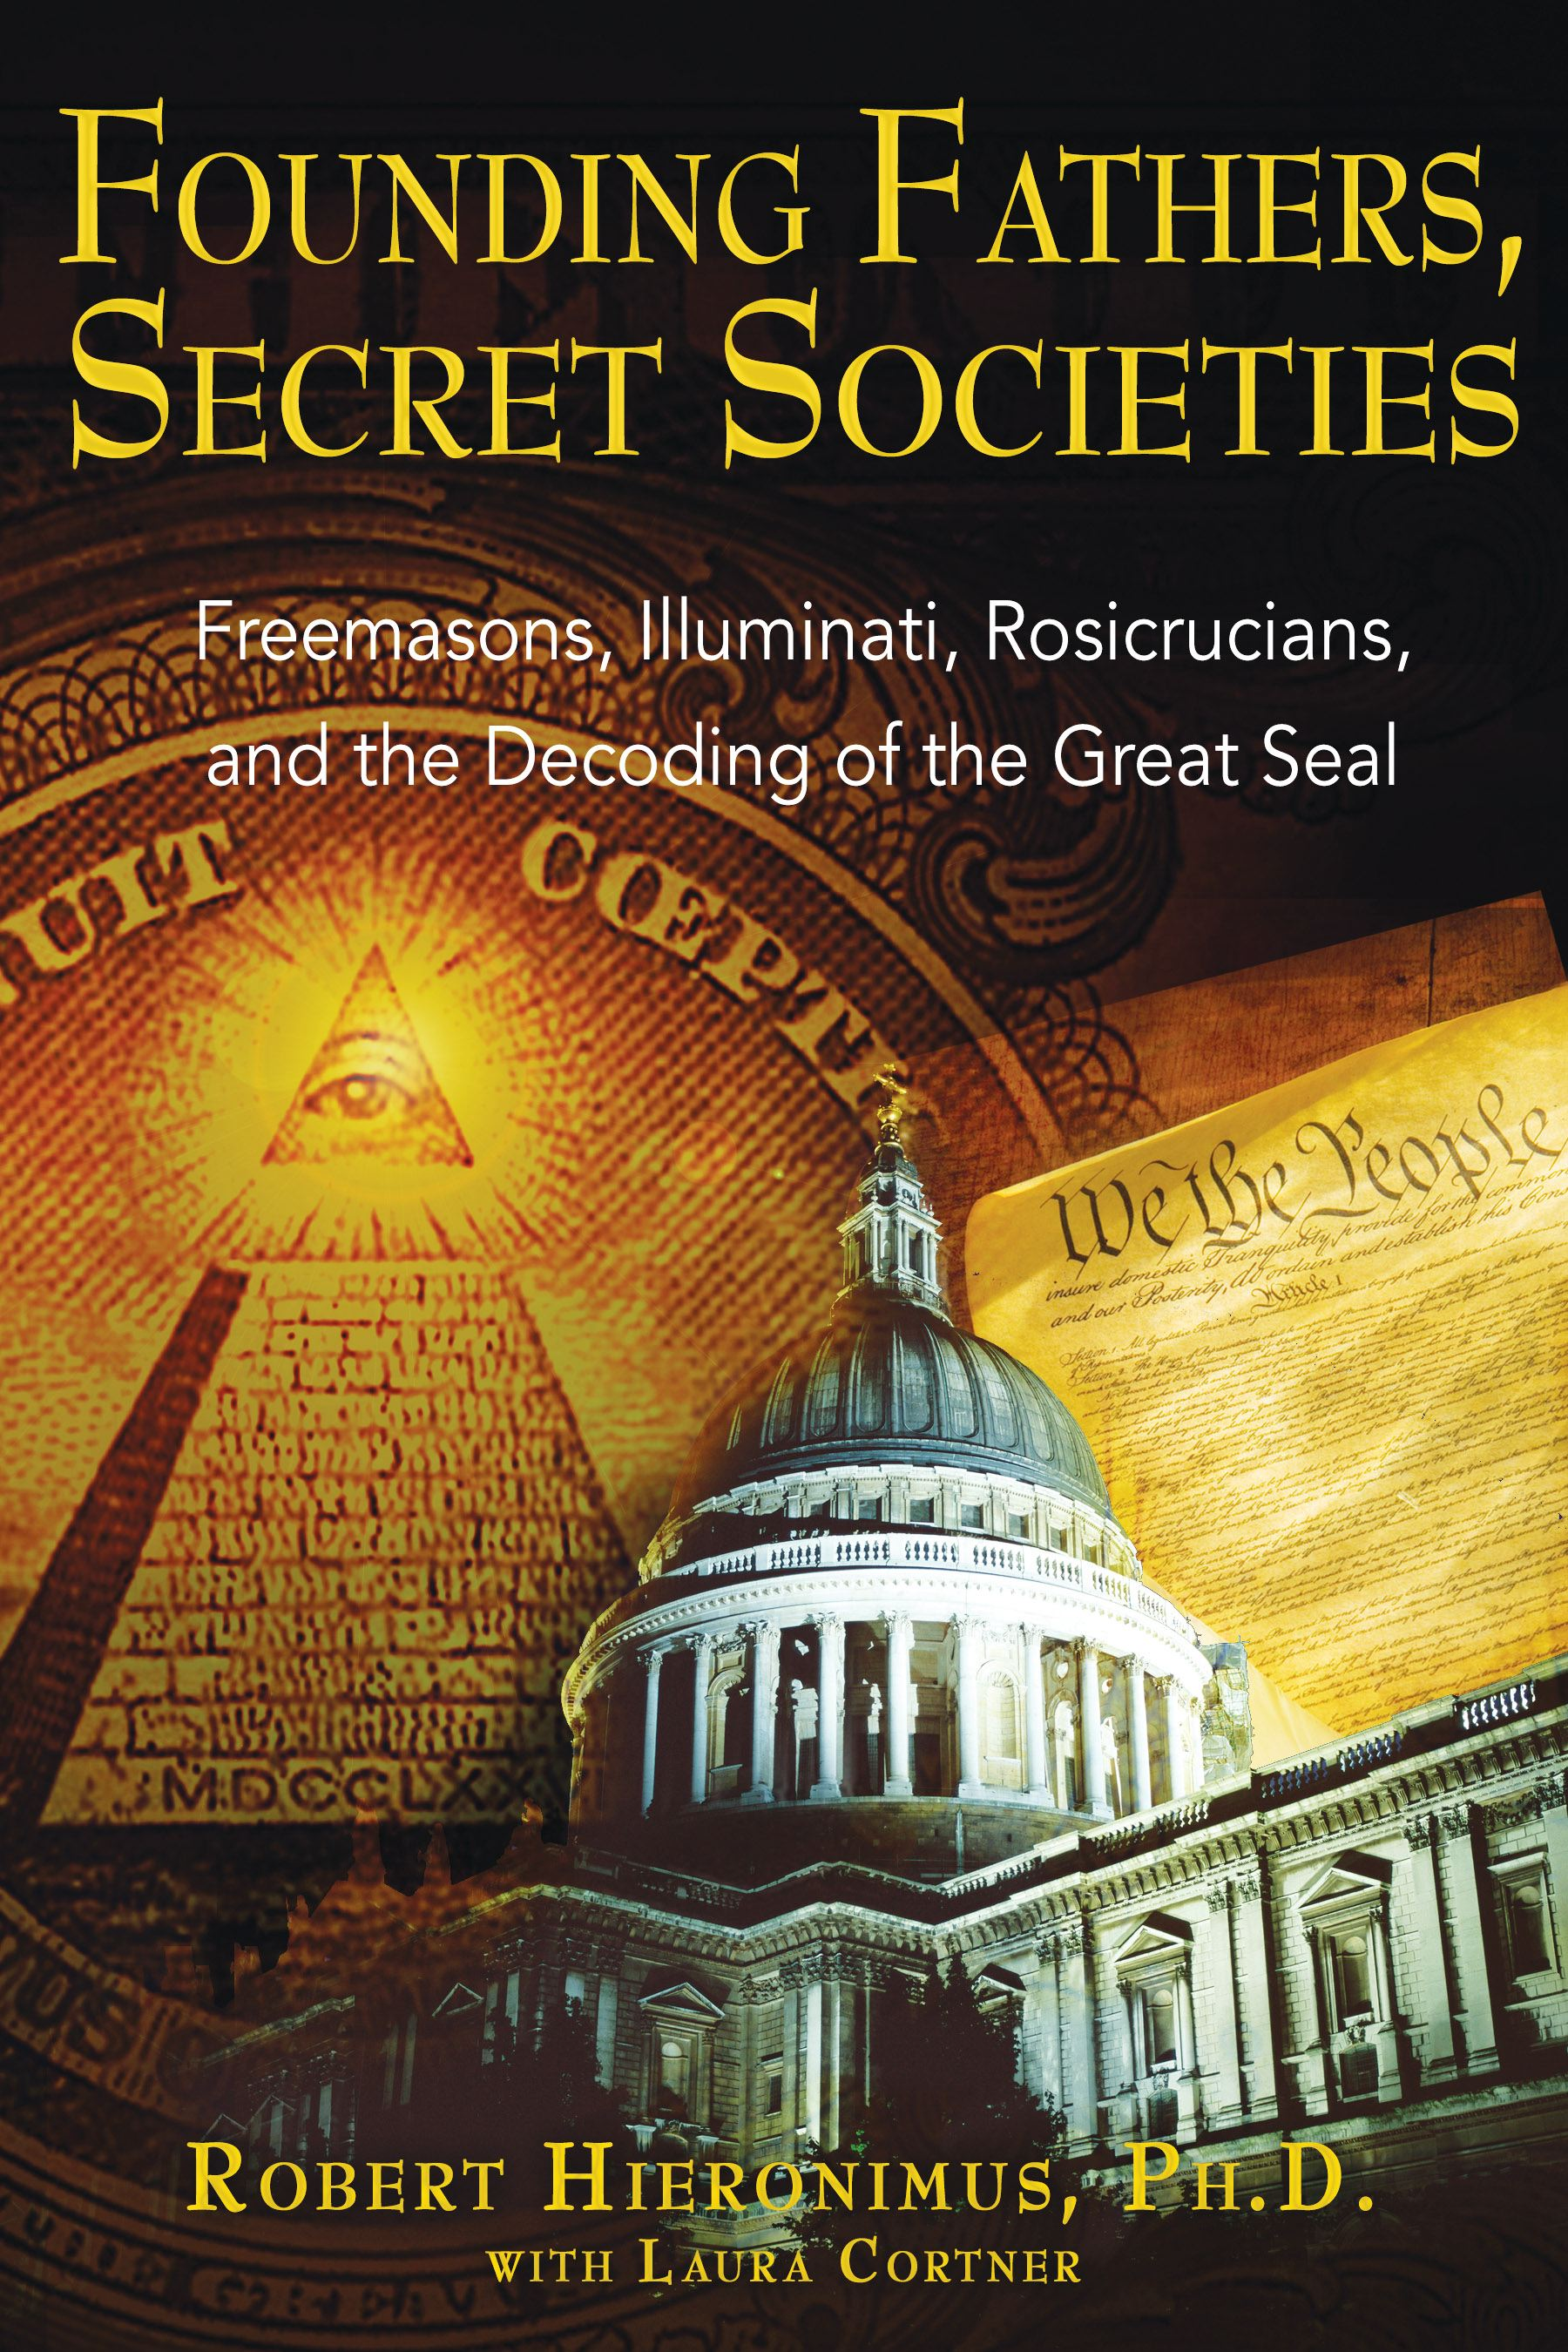 Founding-fathers-secret-societies-9781594770876_hr